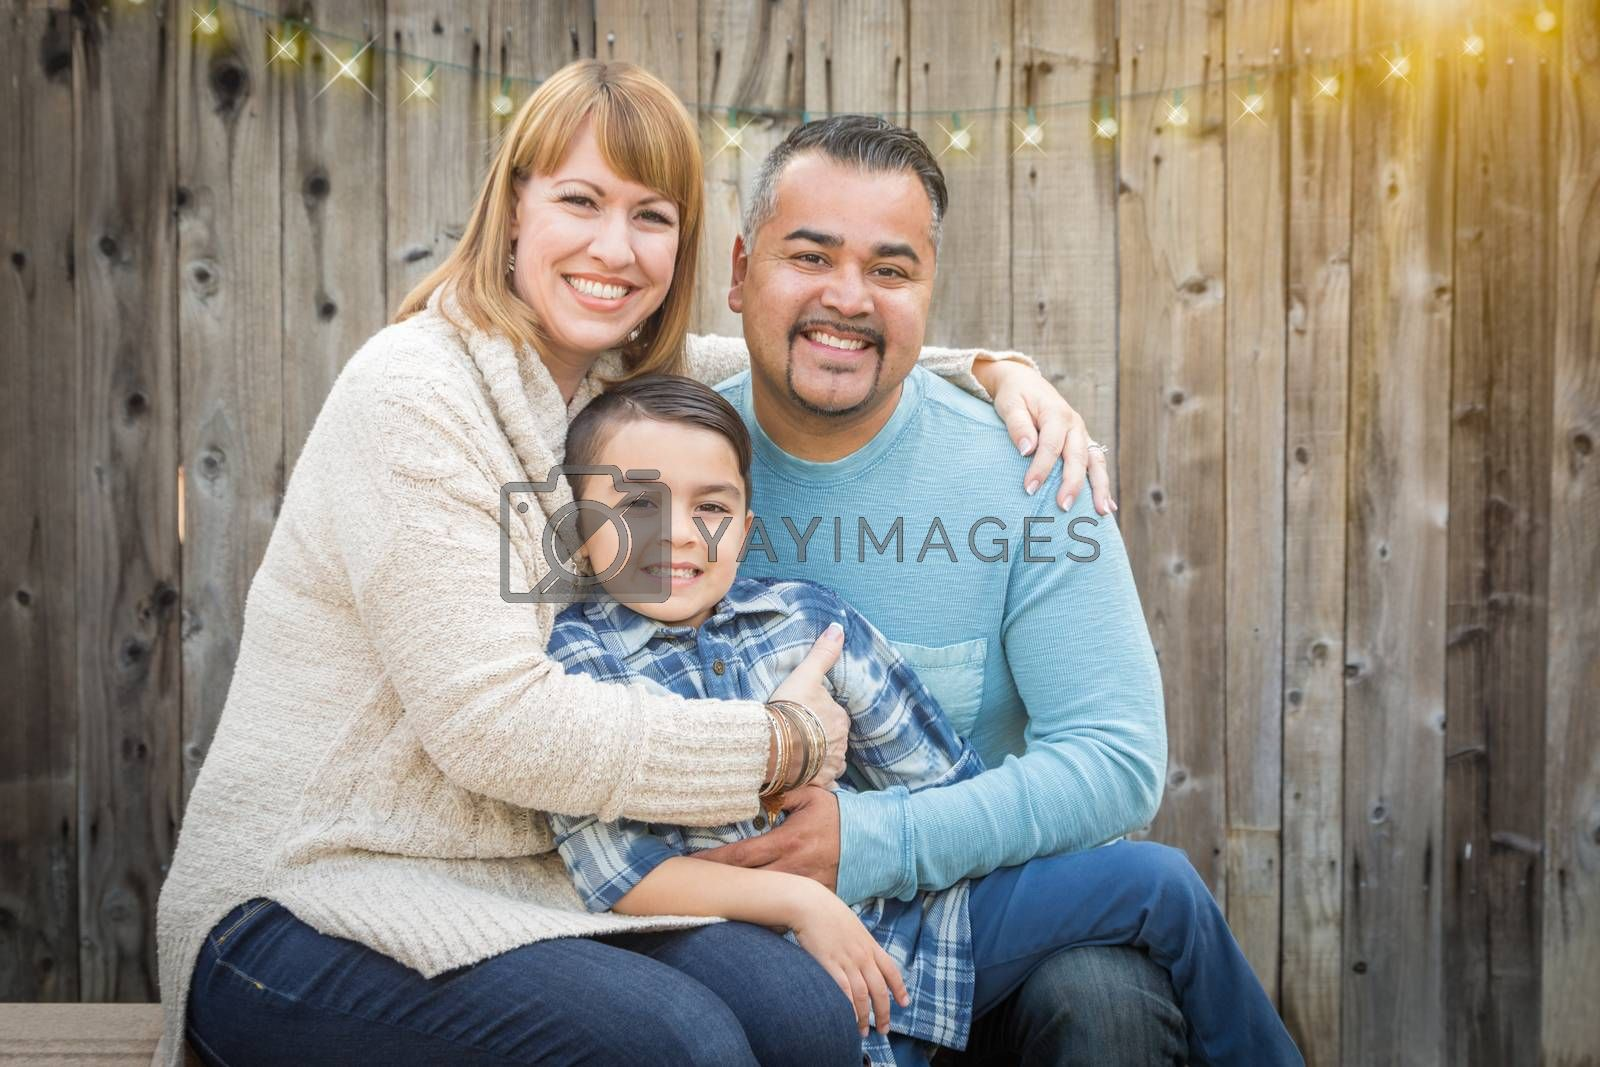 Happy Young Mixed Race Family Portrait Outside.